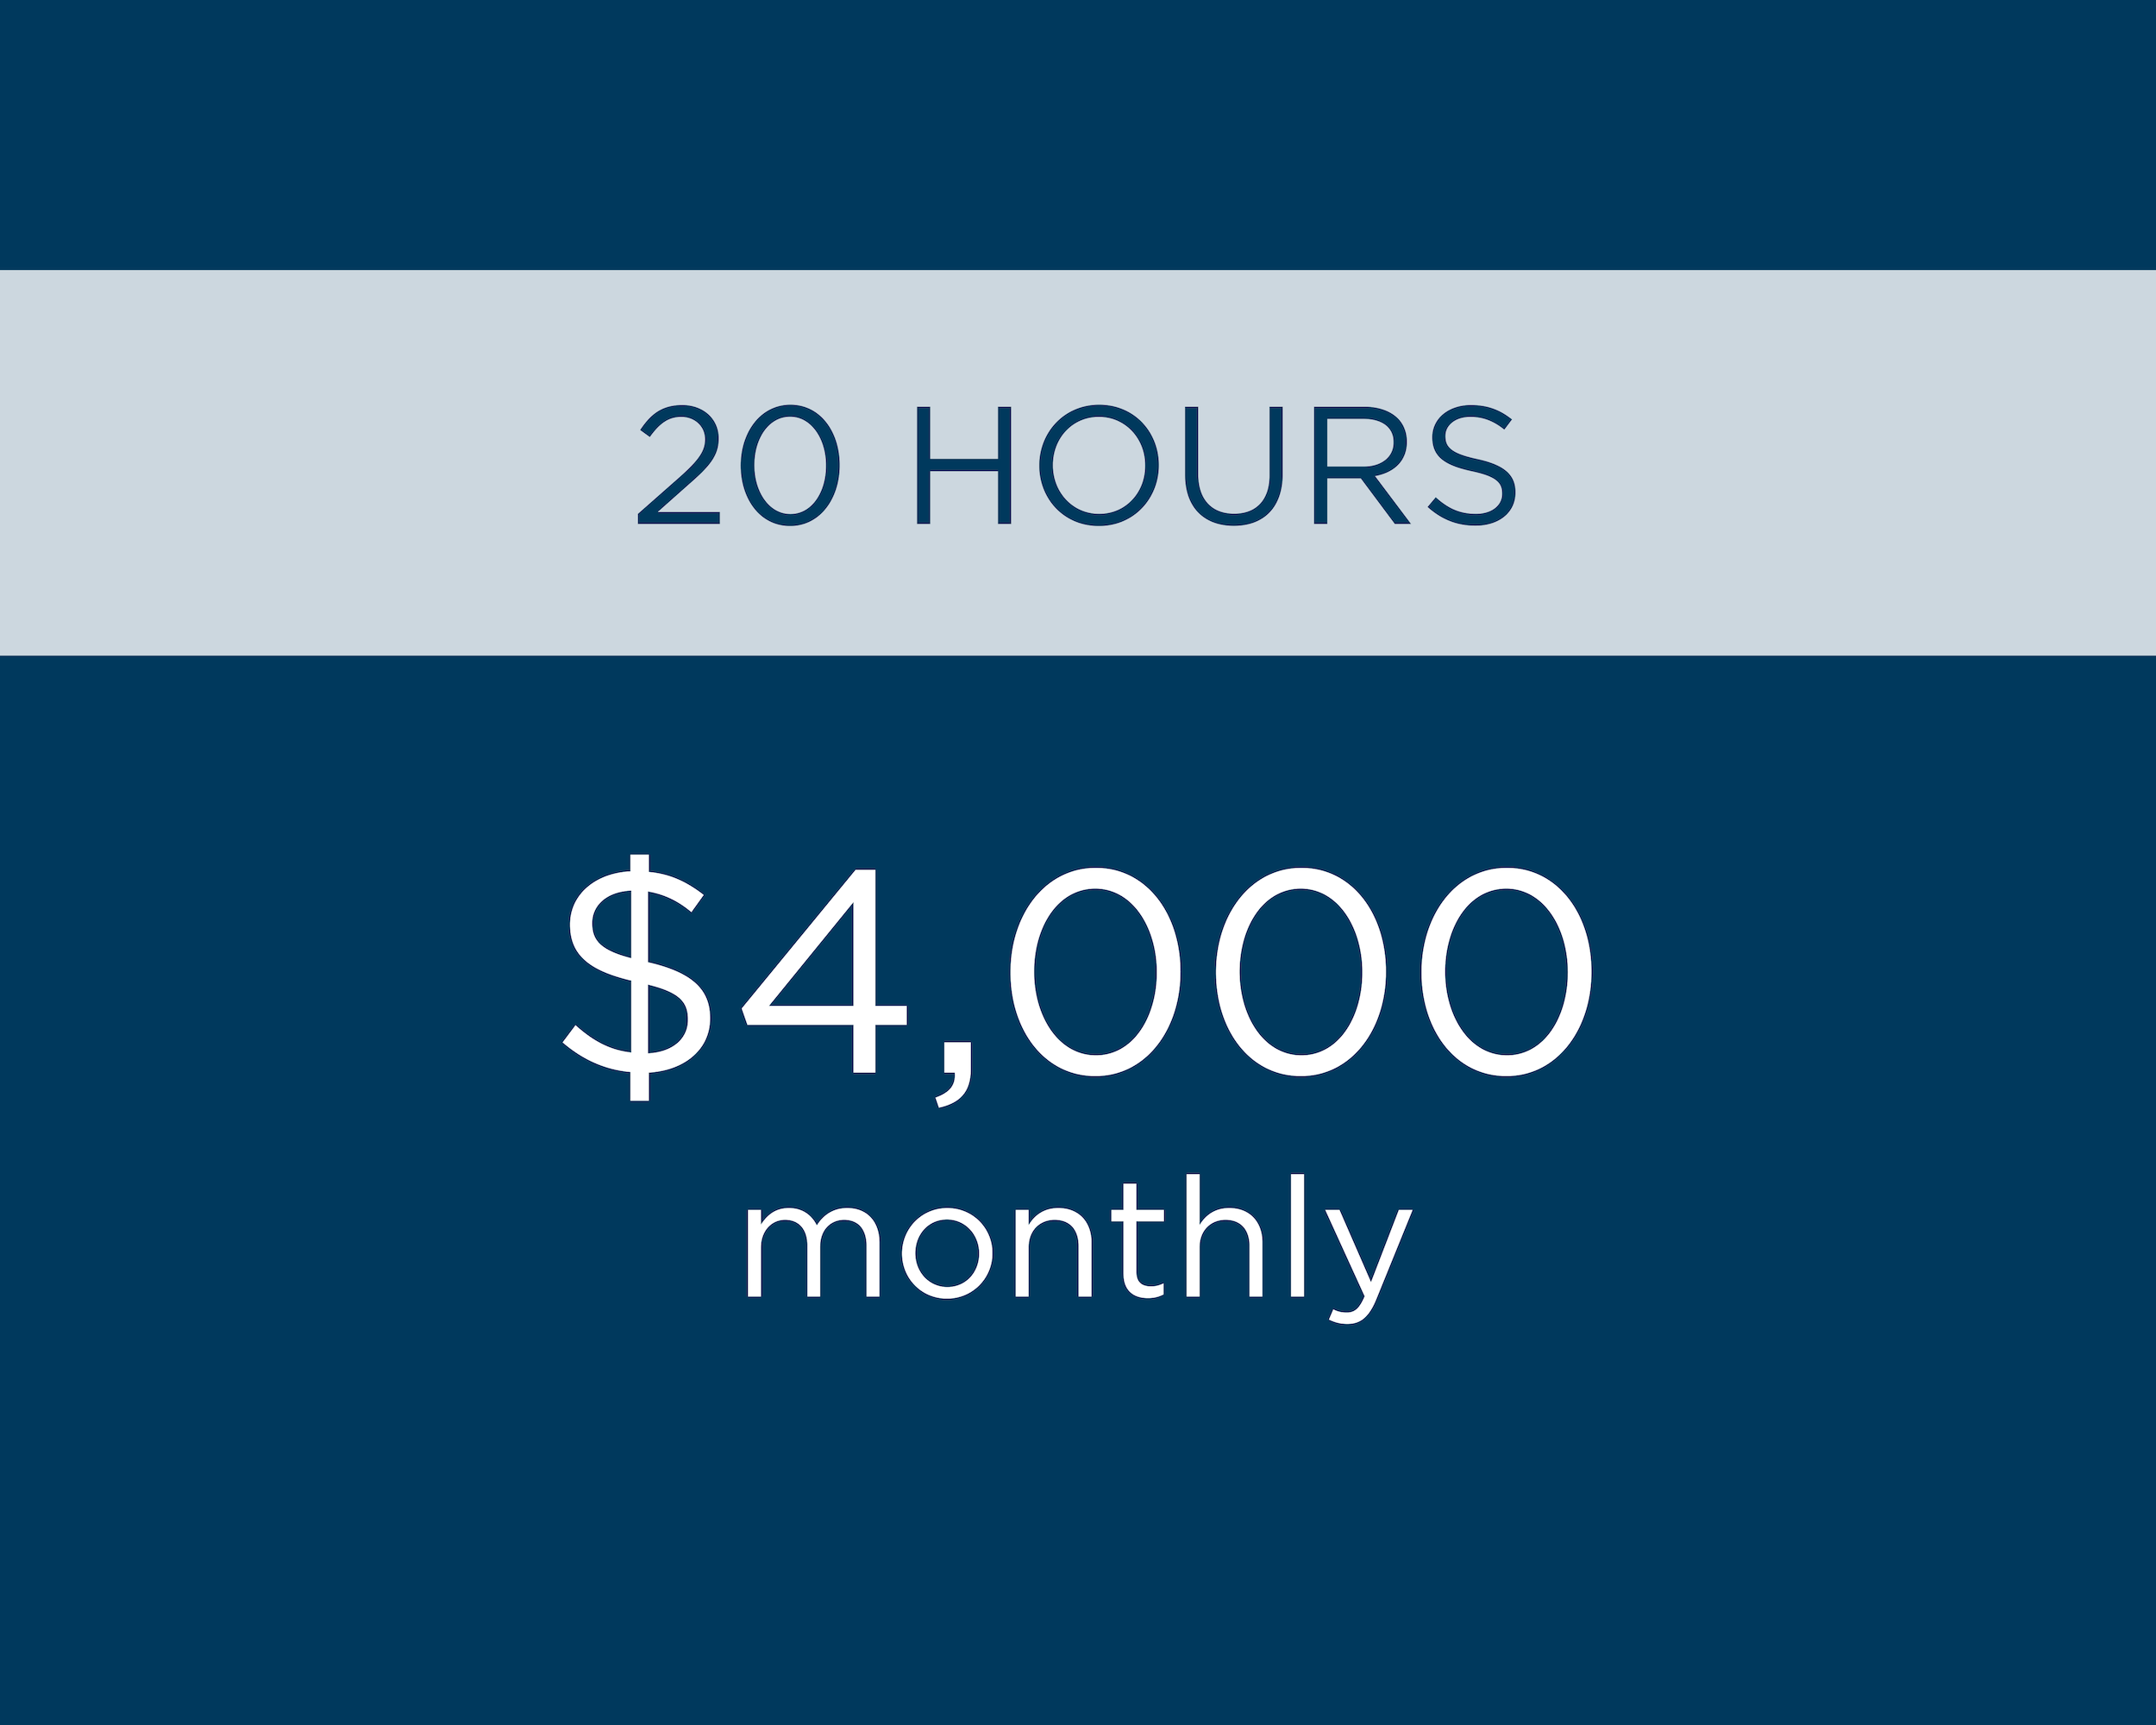 - Additional hours as needed at $200 per hour.